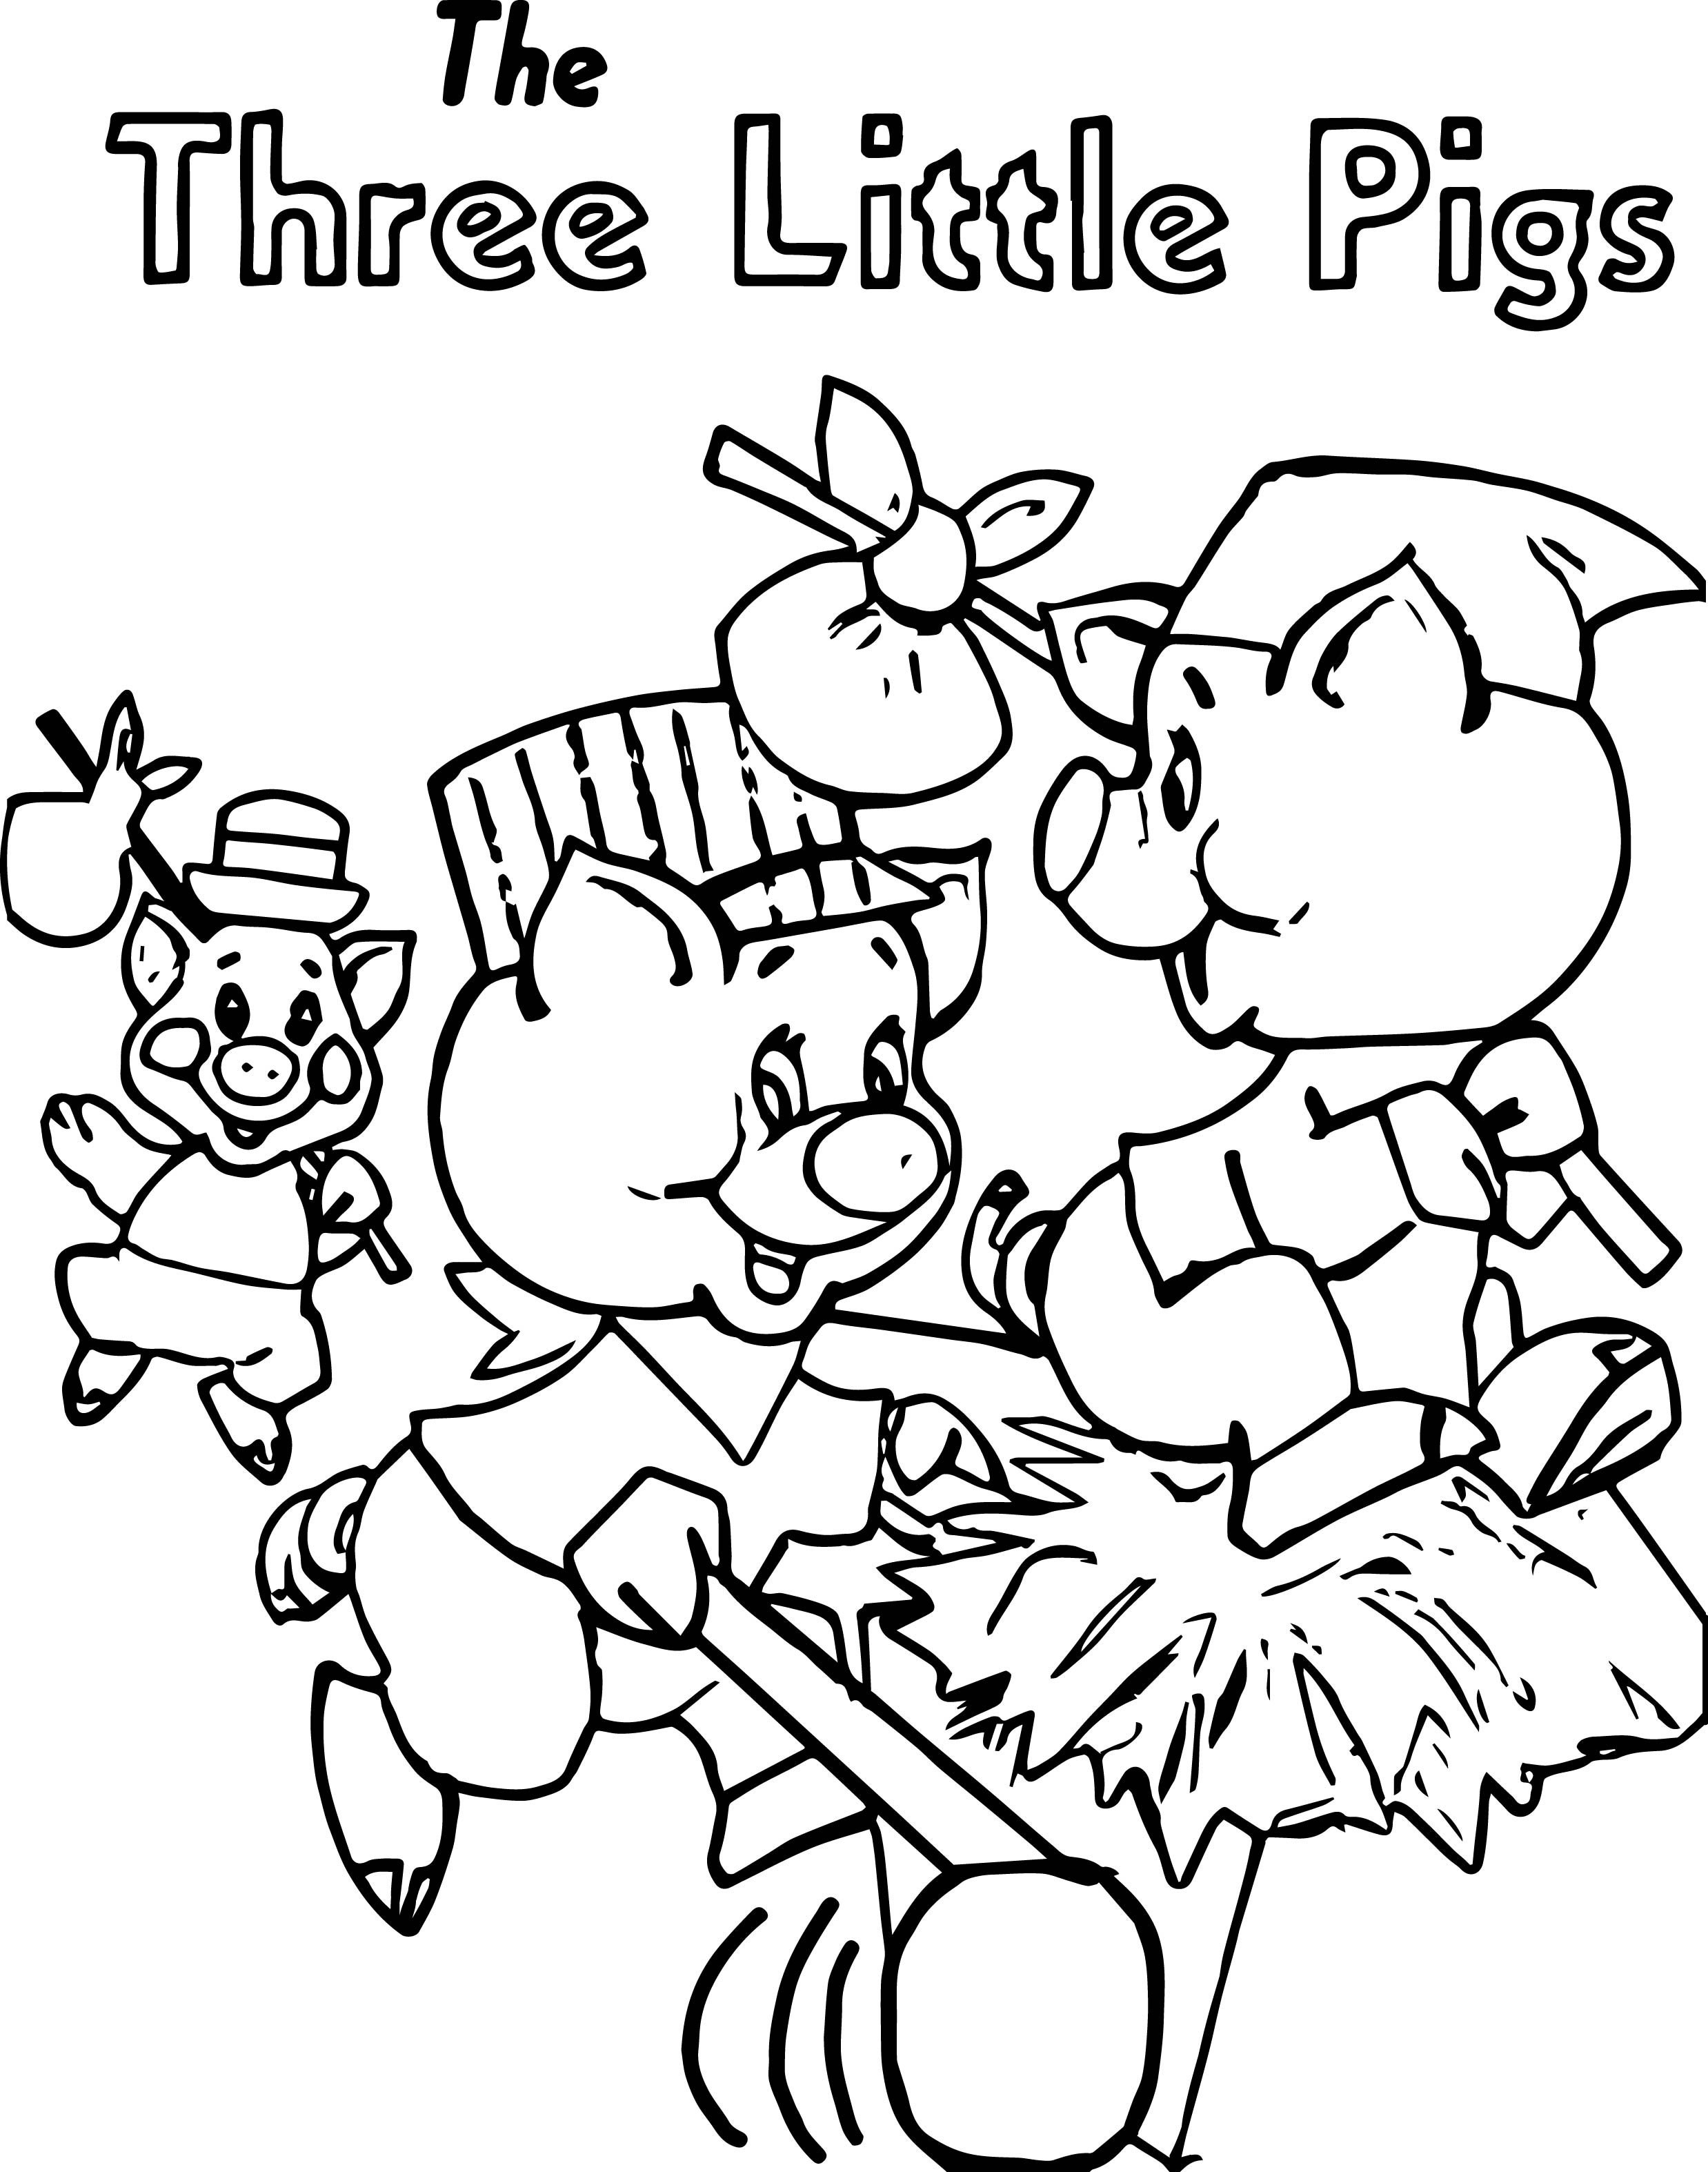 Running The Three Little Pigs Coloring Page | Wecoloringpage